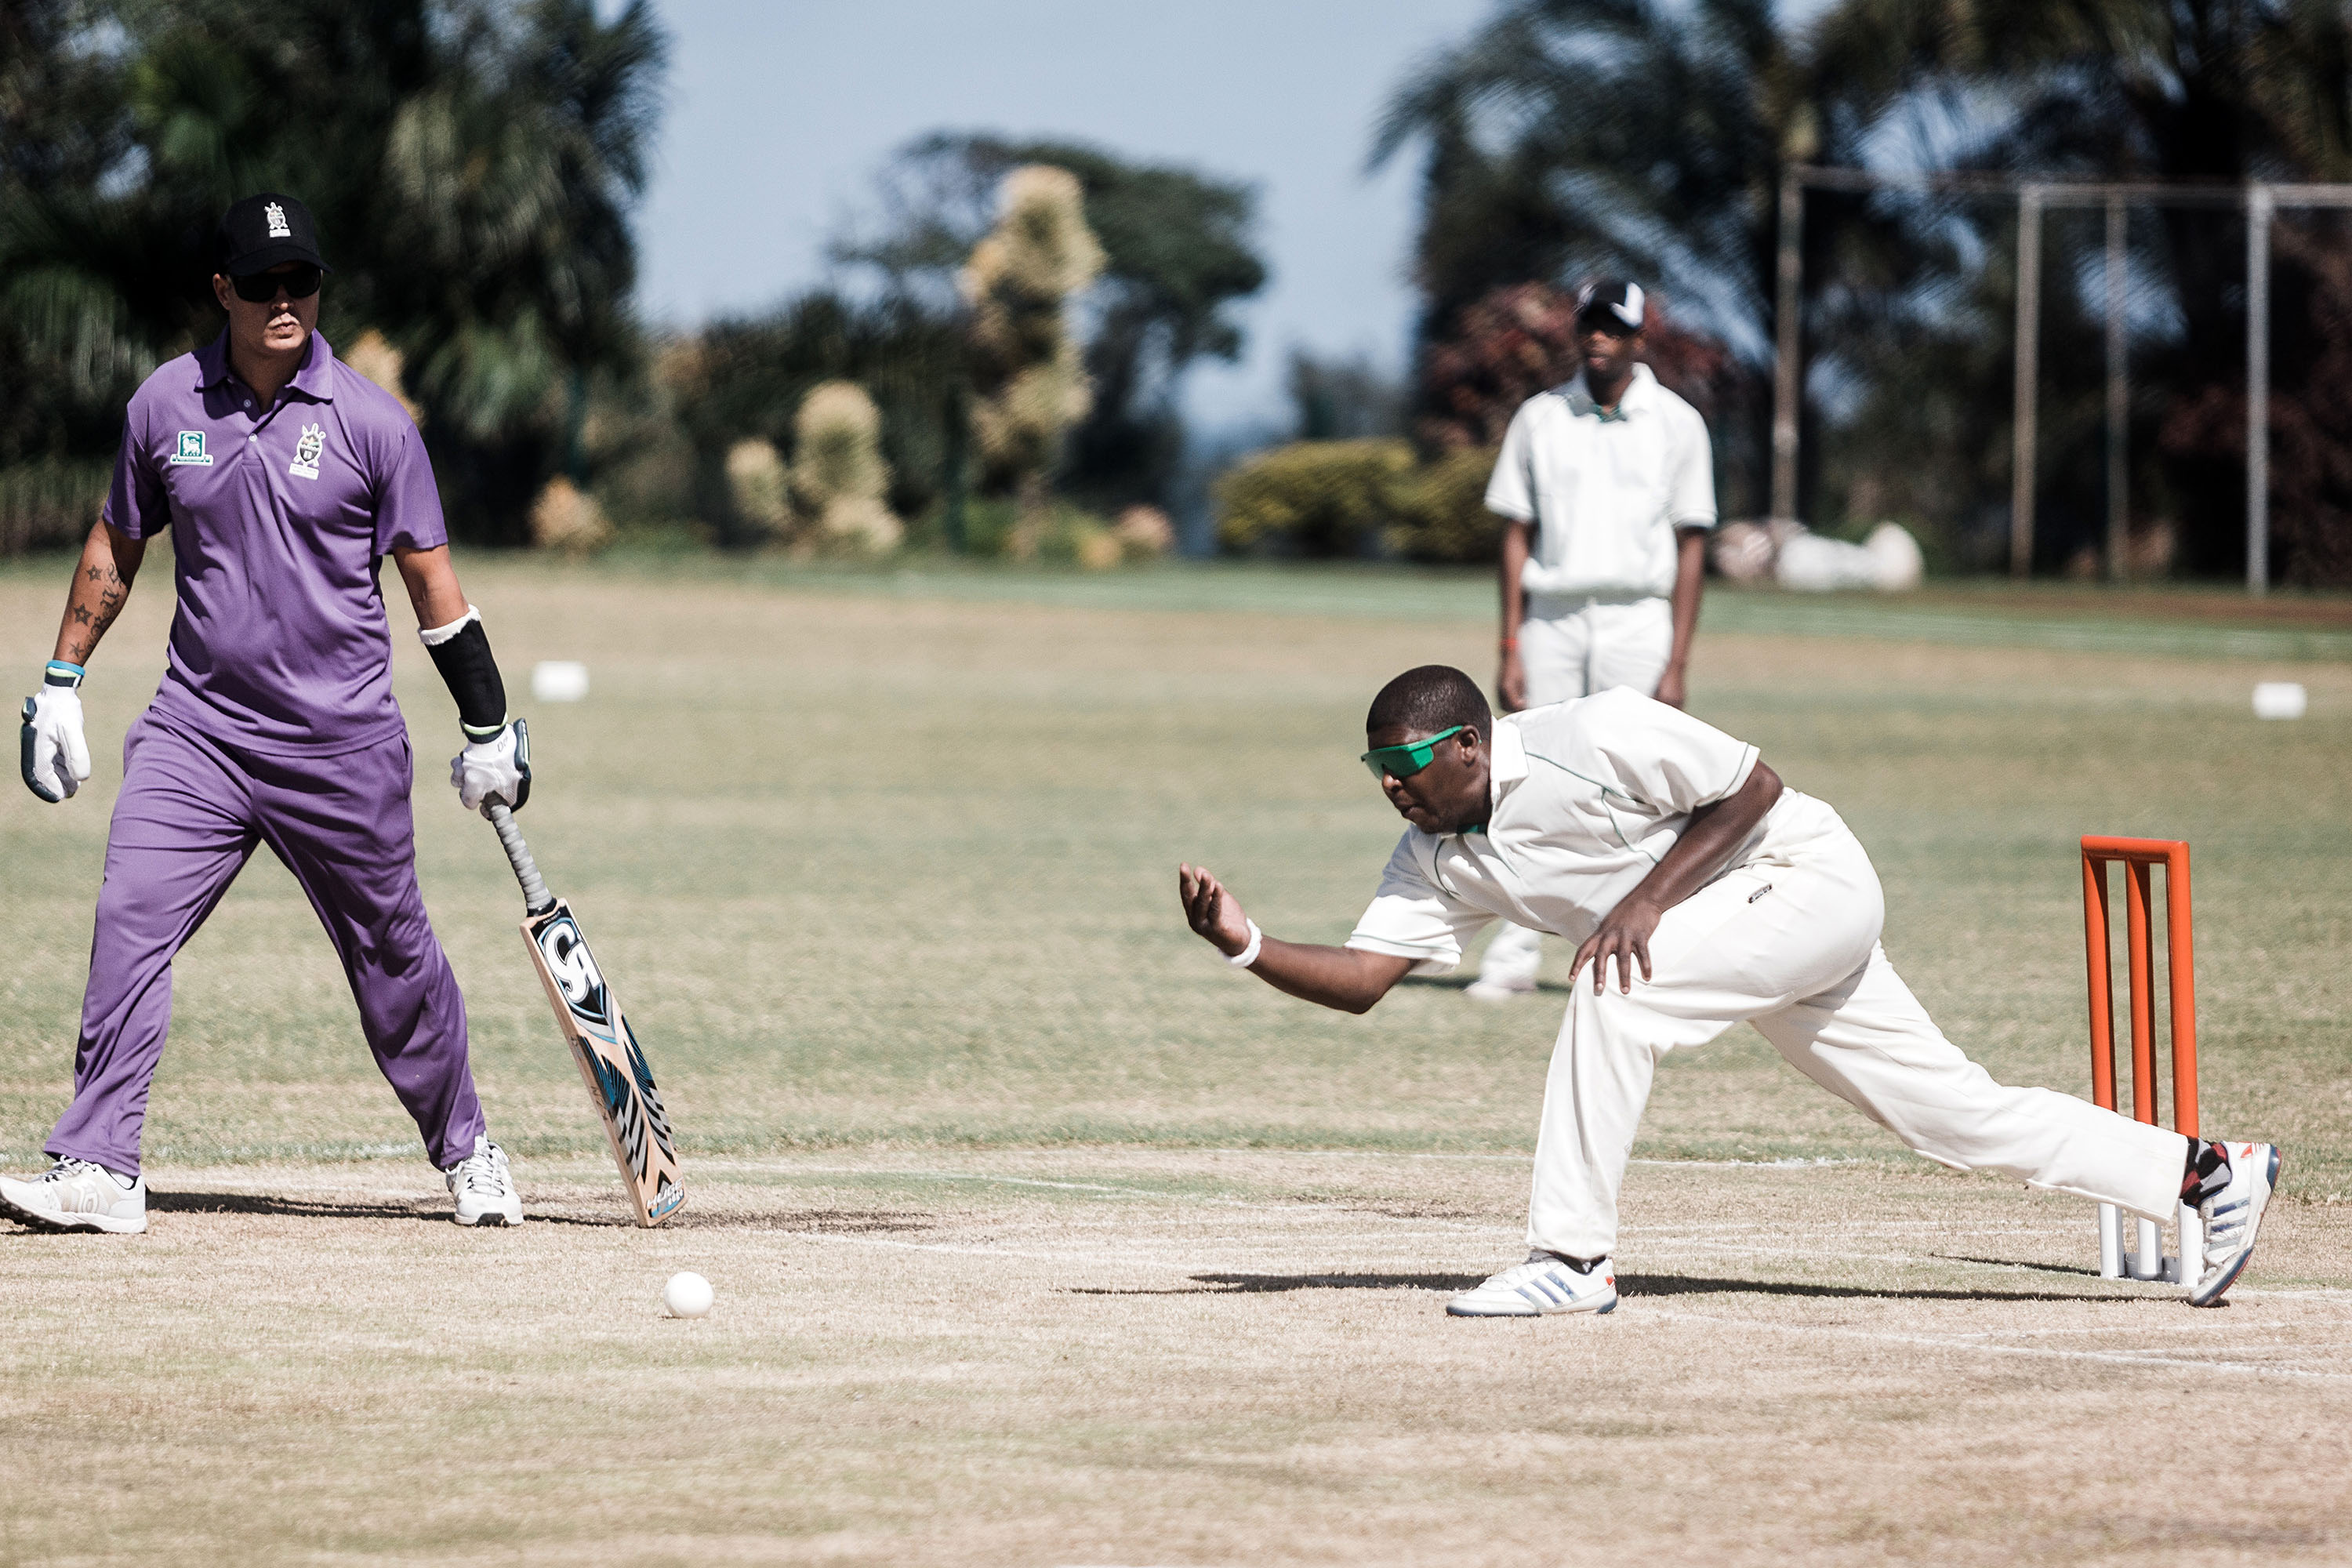 25 September 2019: A player from the Free State, in white, bowls against Kwazulu-Natal in purple. Blind and partially sighted cricketers rely on commentary from fellow players to gauge the path of the ball.